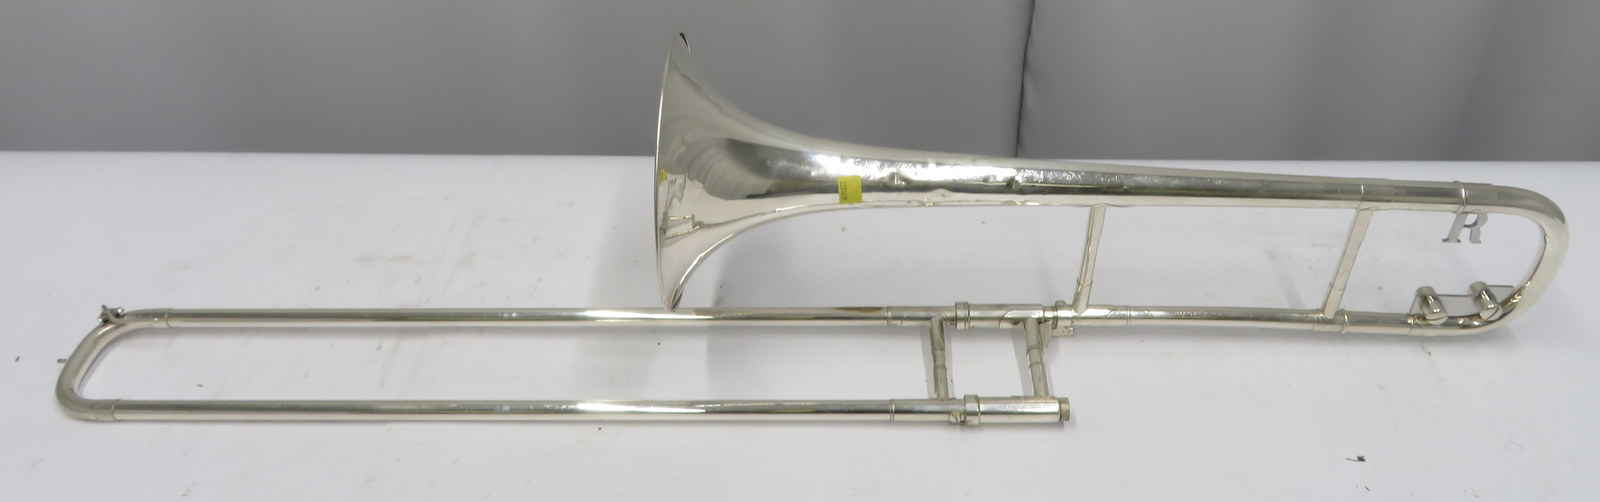 Lot 49 - Rath R3 trombone with case. Serial number: R3043.